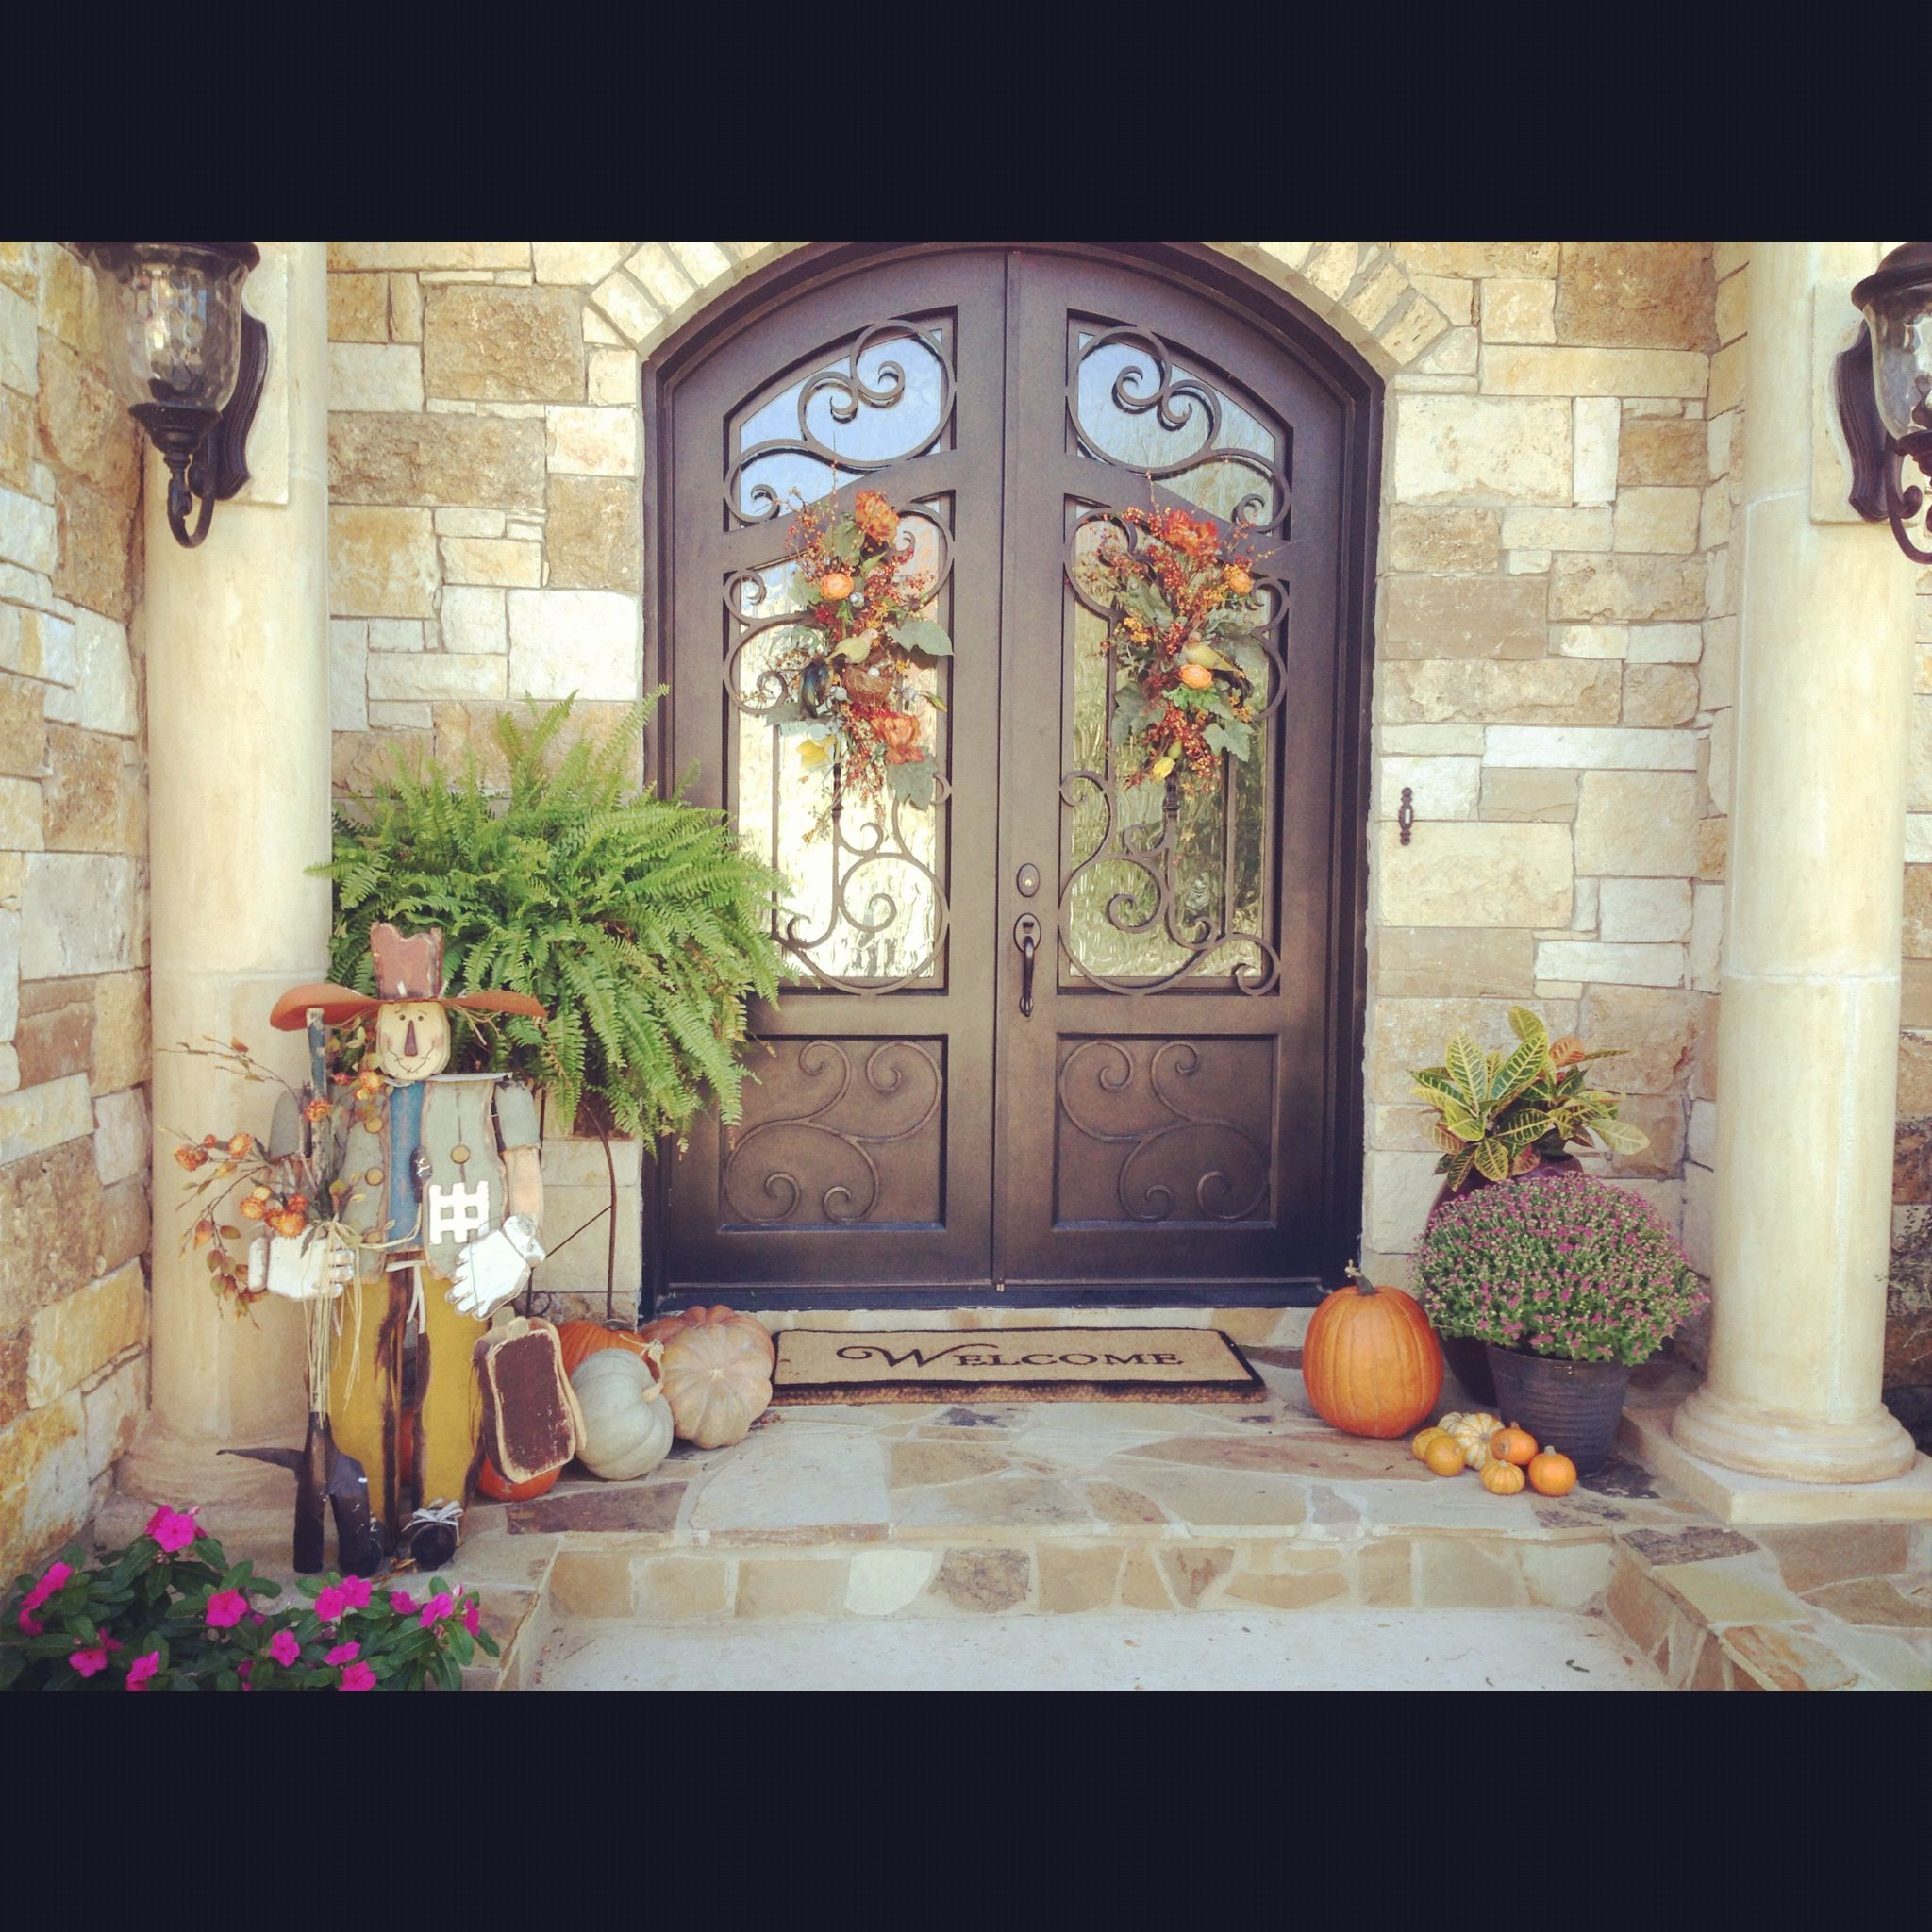 Fall Front Porch Holiday Designs Crafts Pinterest